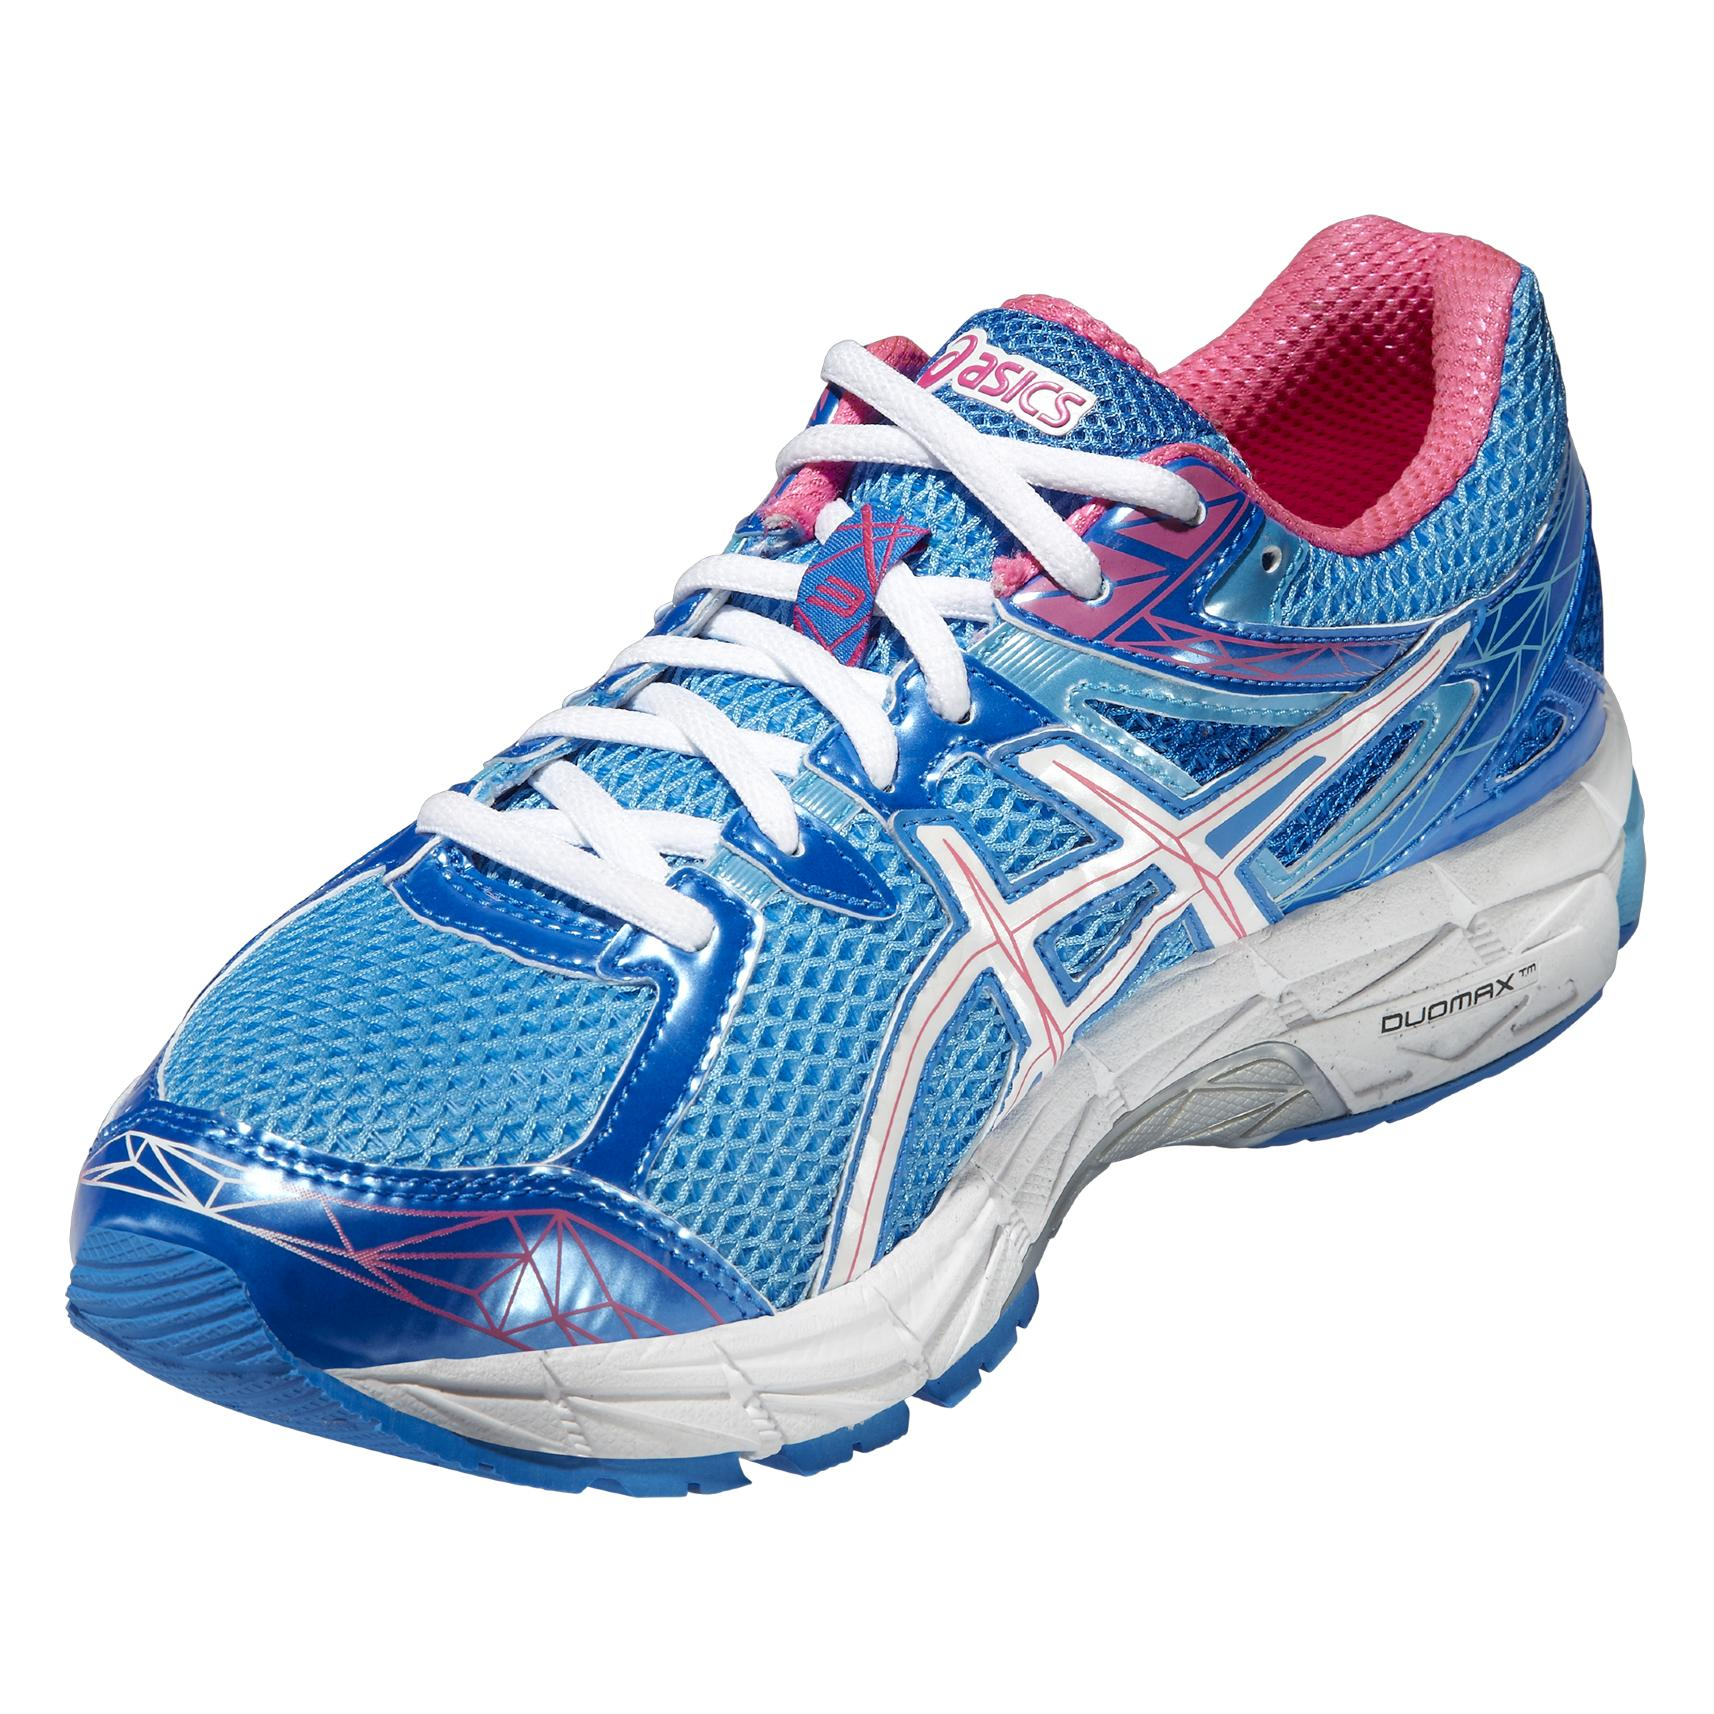 Asics Womens GT-1000 3 Running Shoes - Turquoise/White/Hot